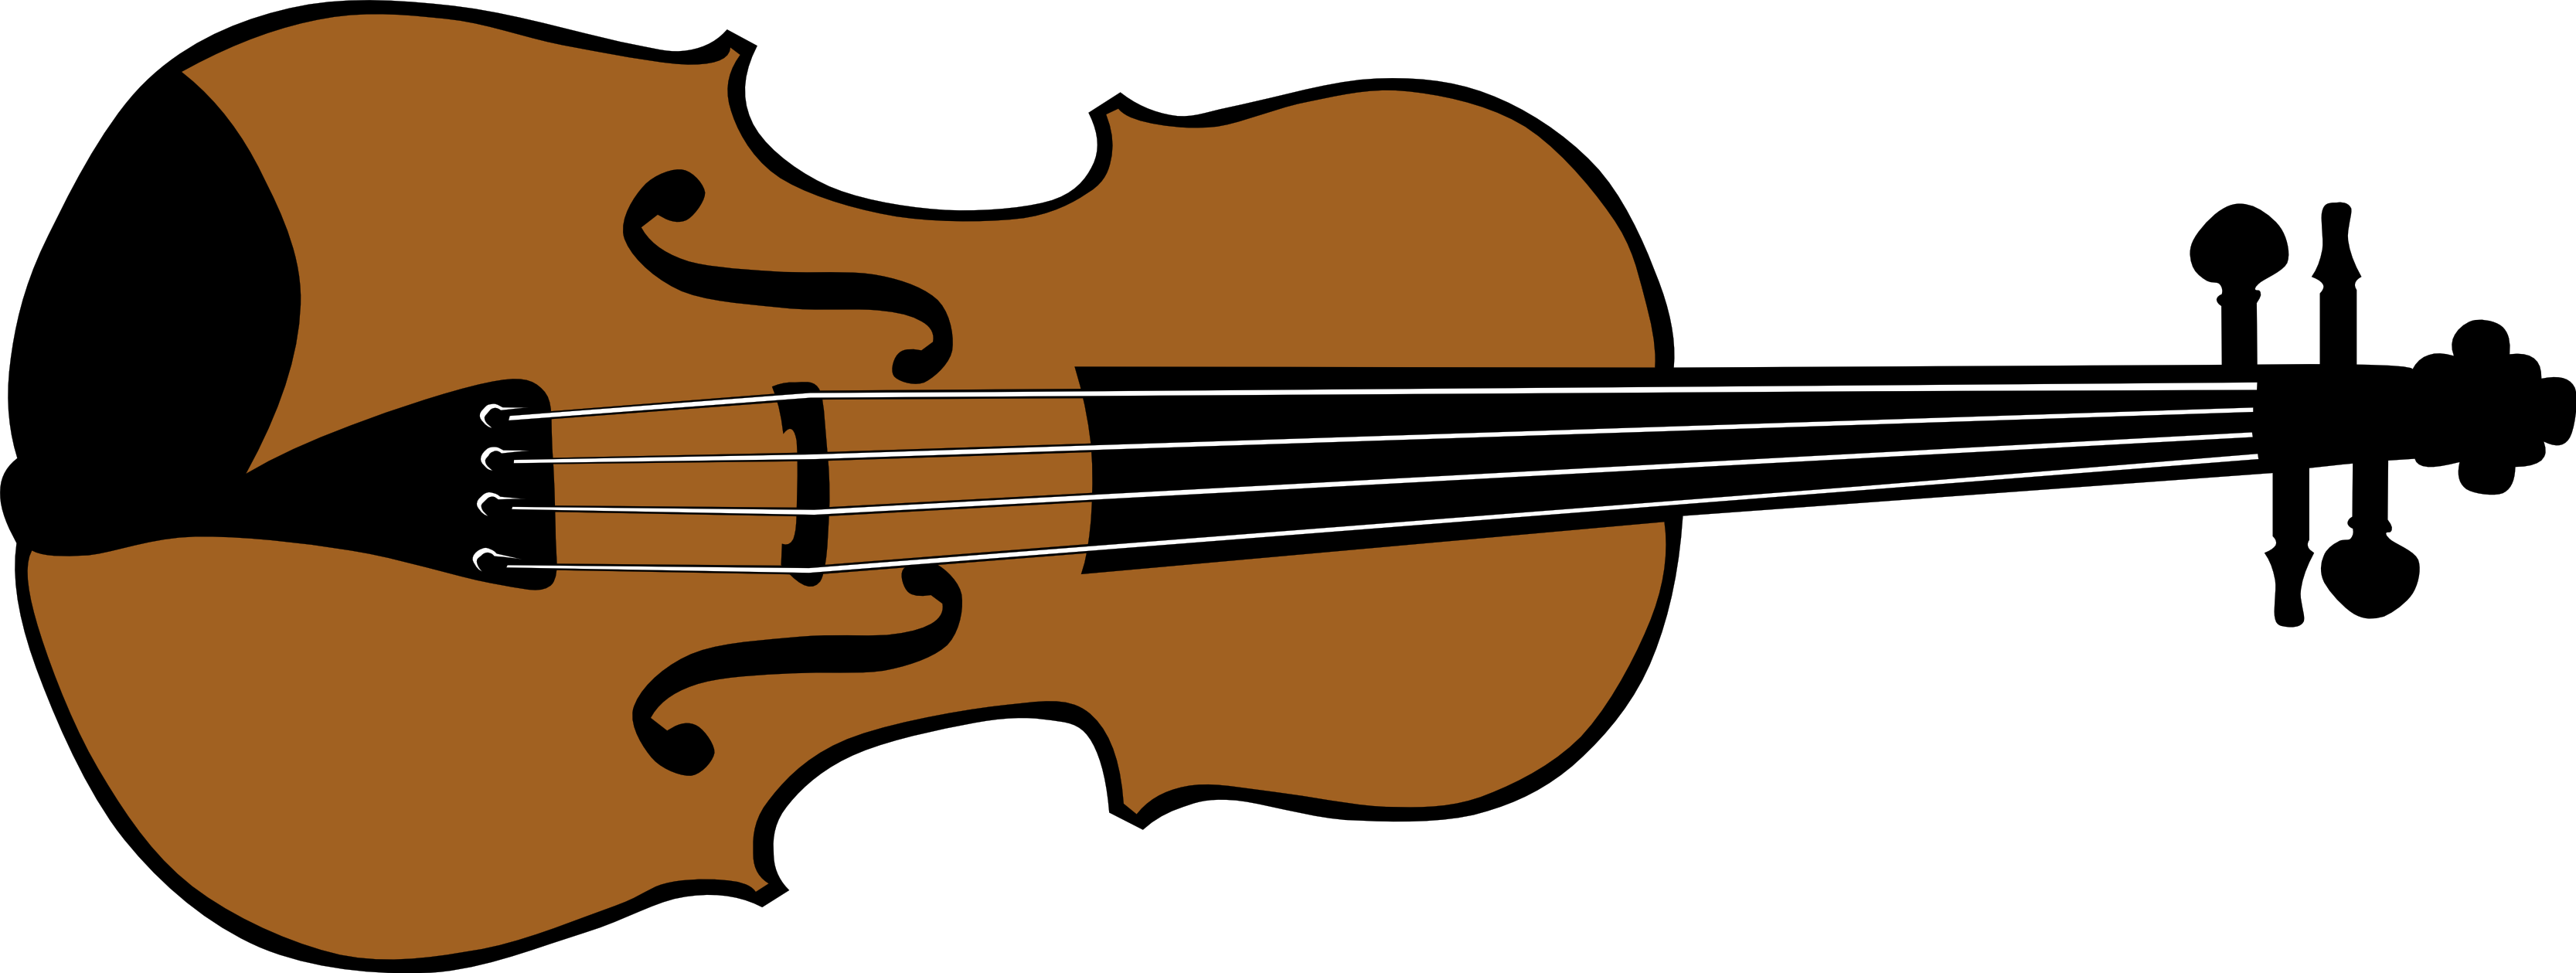 Piano clipart piano guitar. Violin clip art free